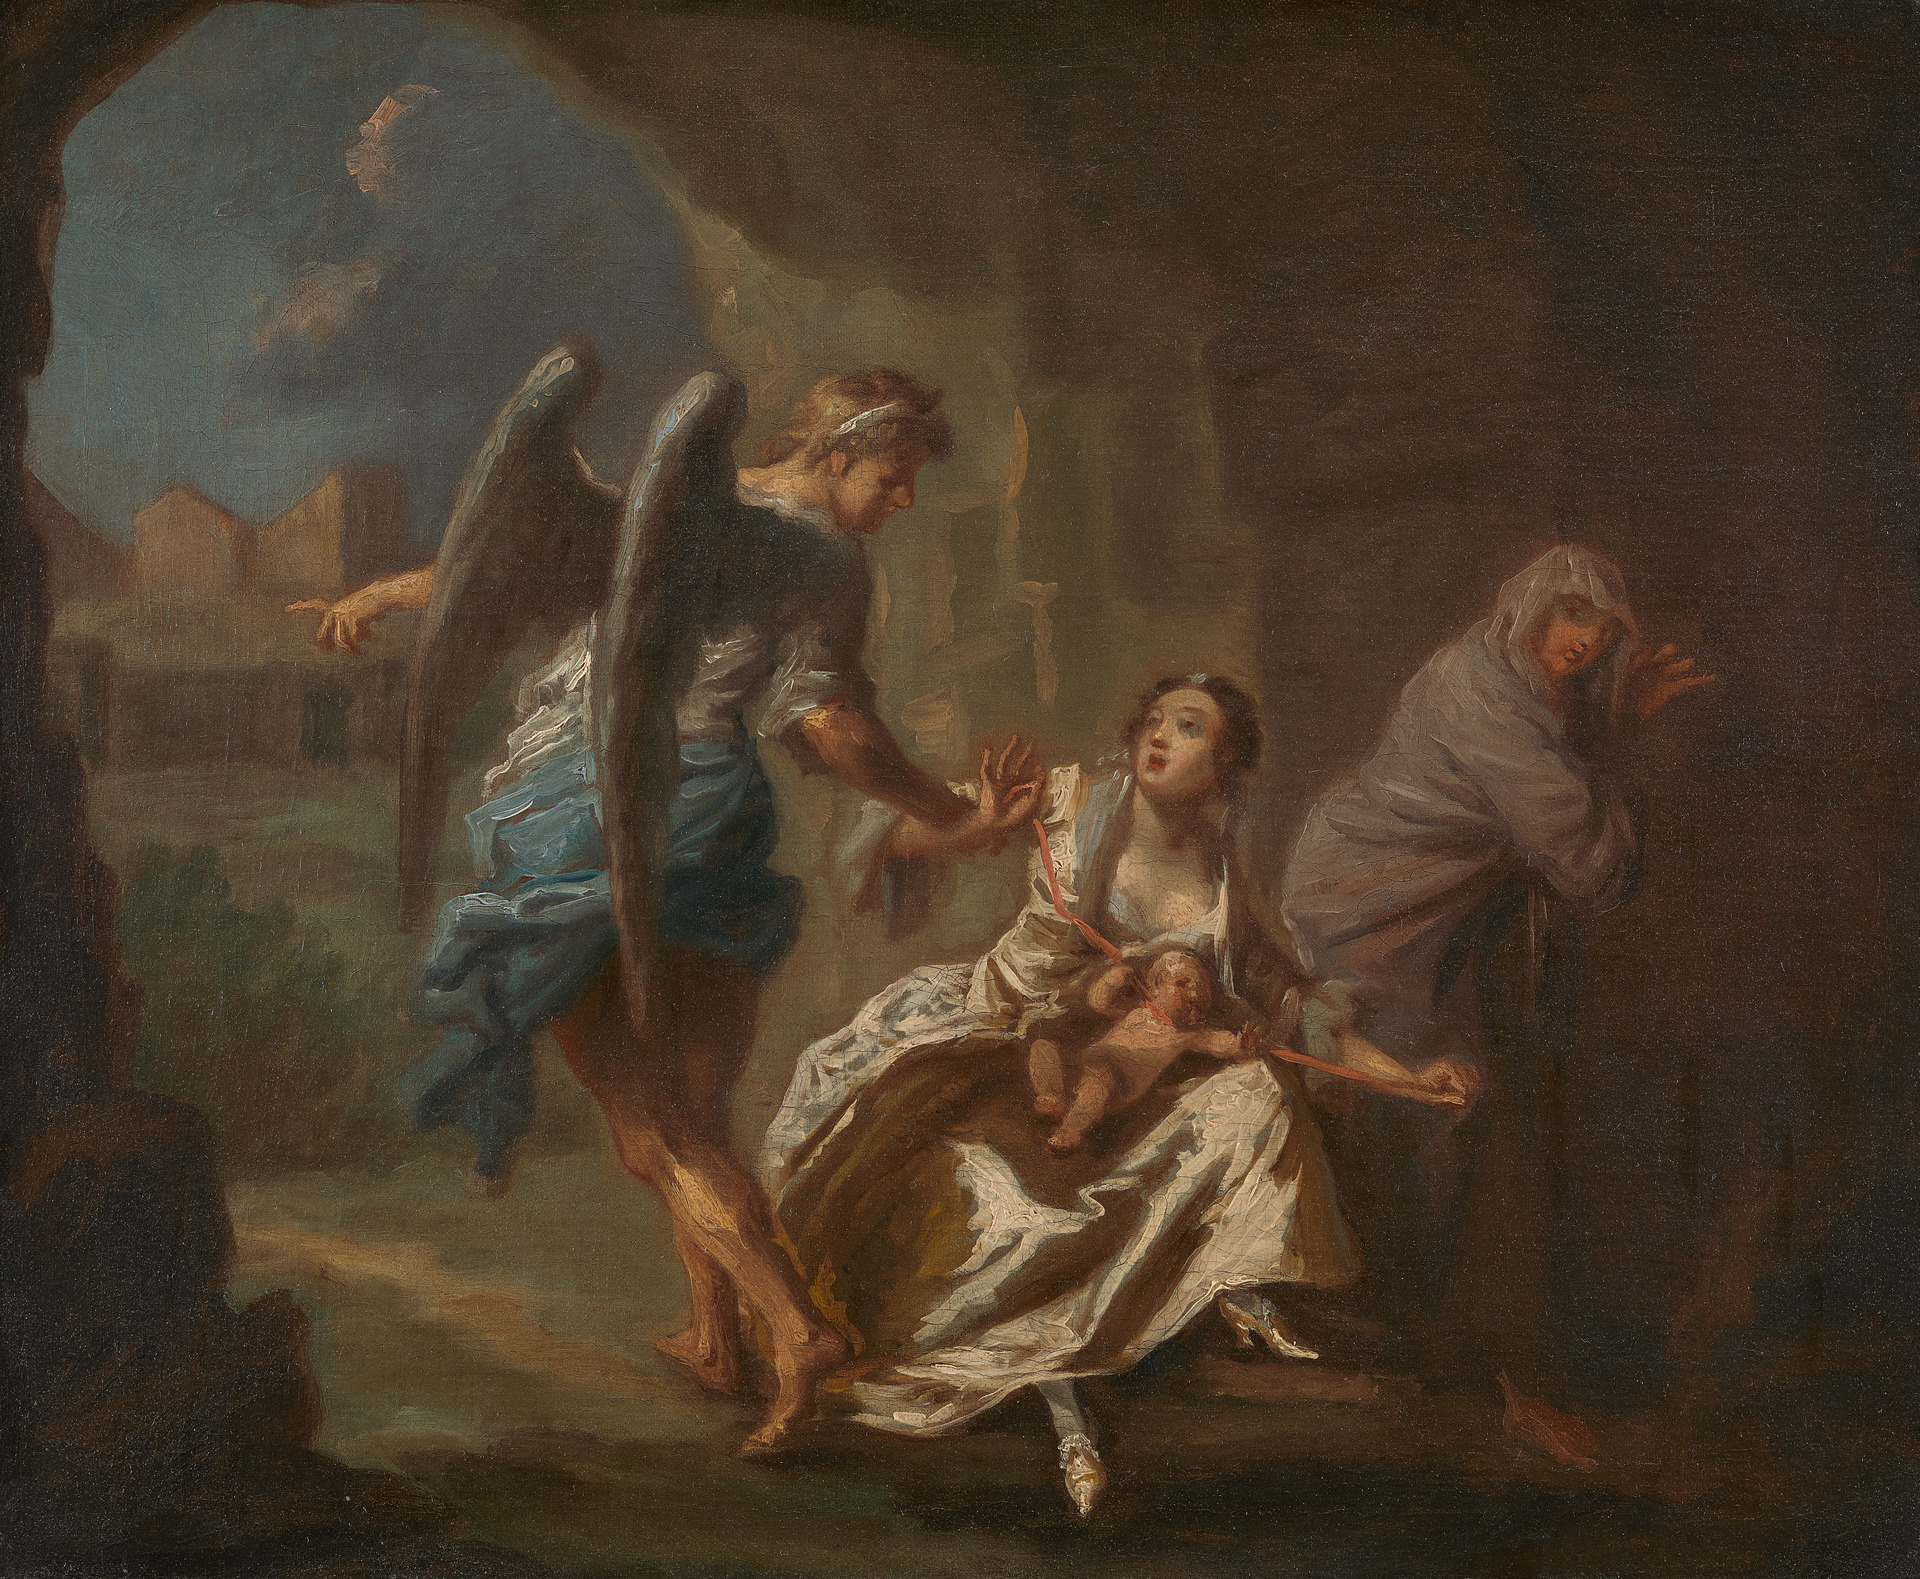 Basic Instincts: The art of Joseph Highmore at the Foundling Museum